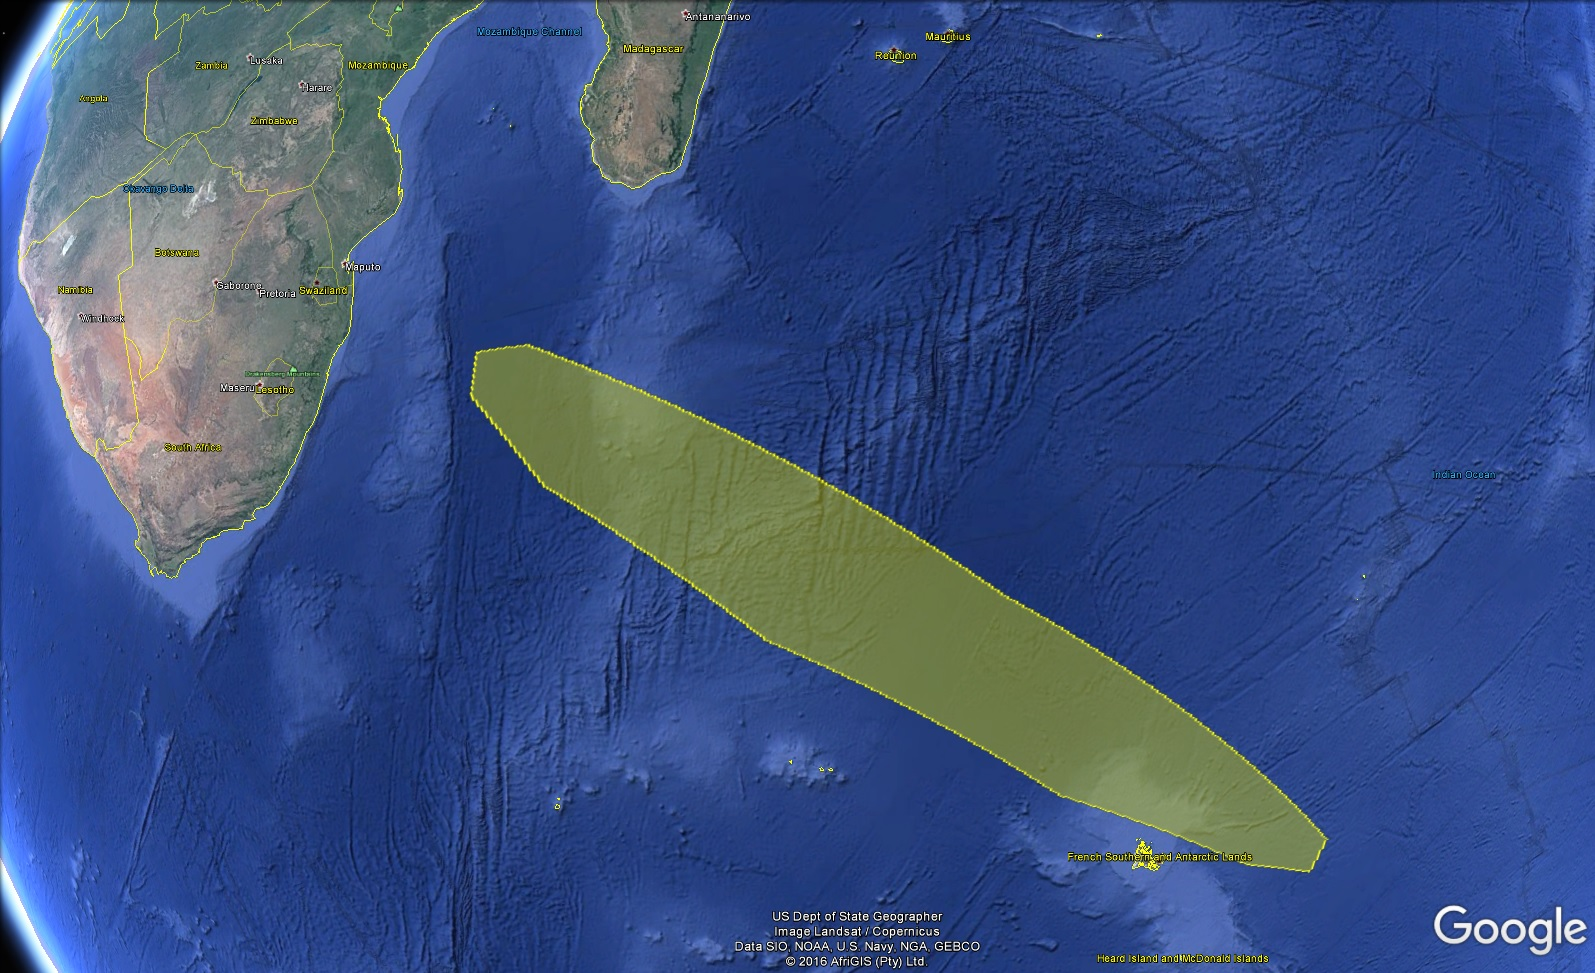 Stage 2 Impact Zone - Image: Google Earth / Spaceflight101